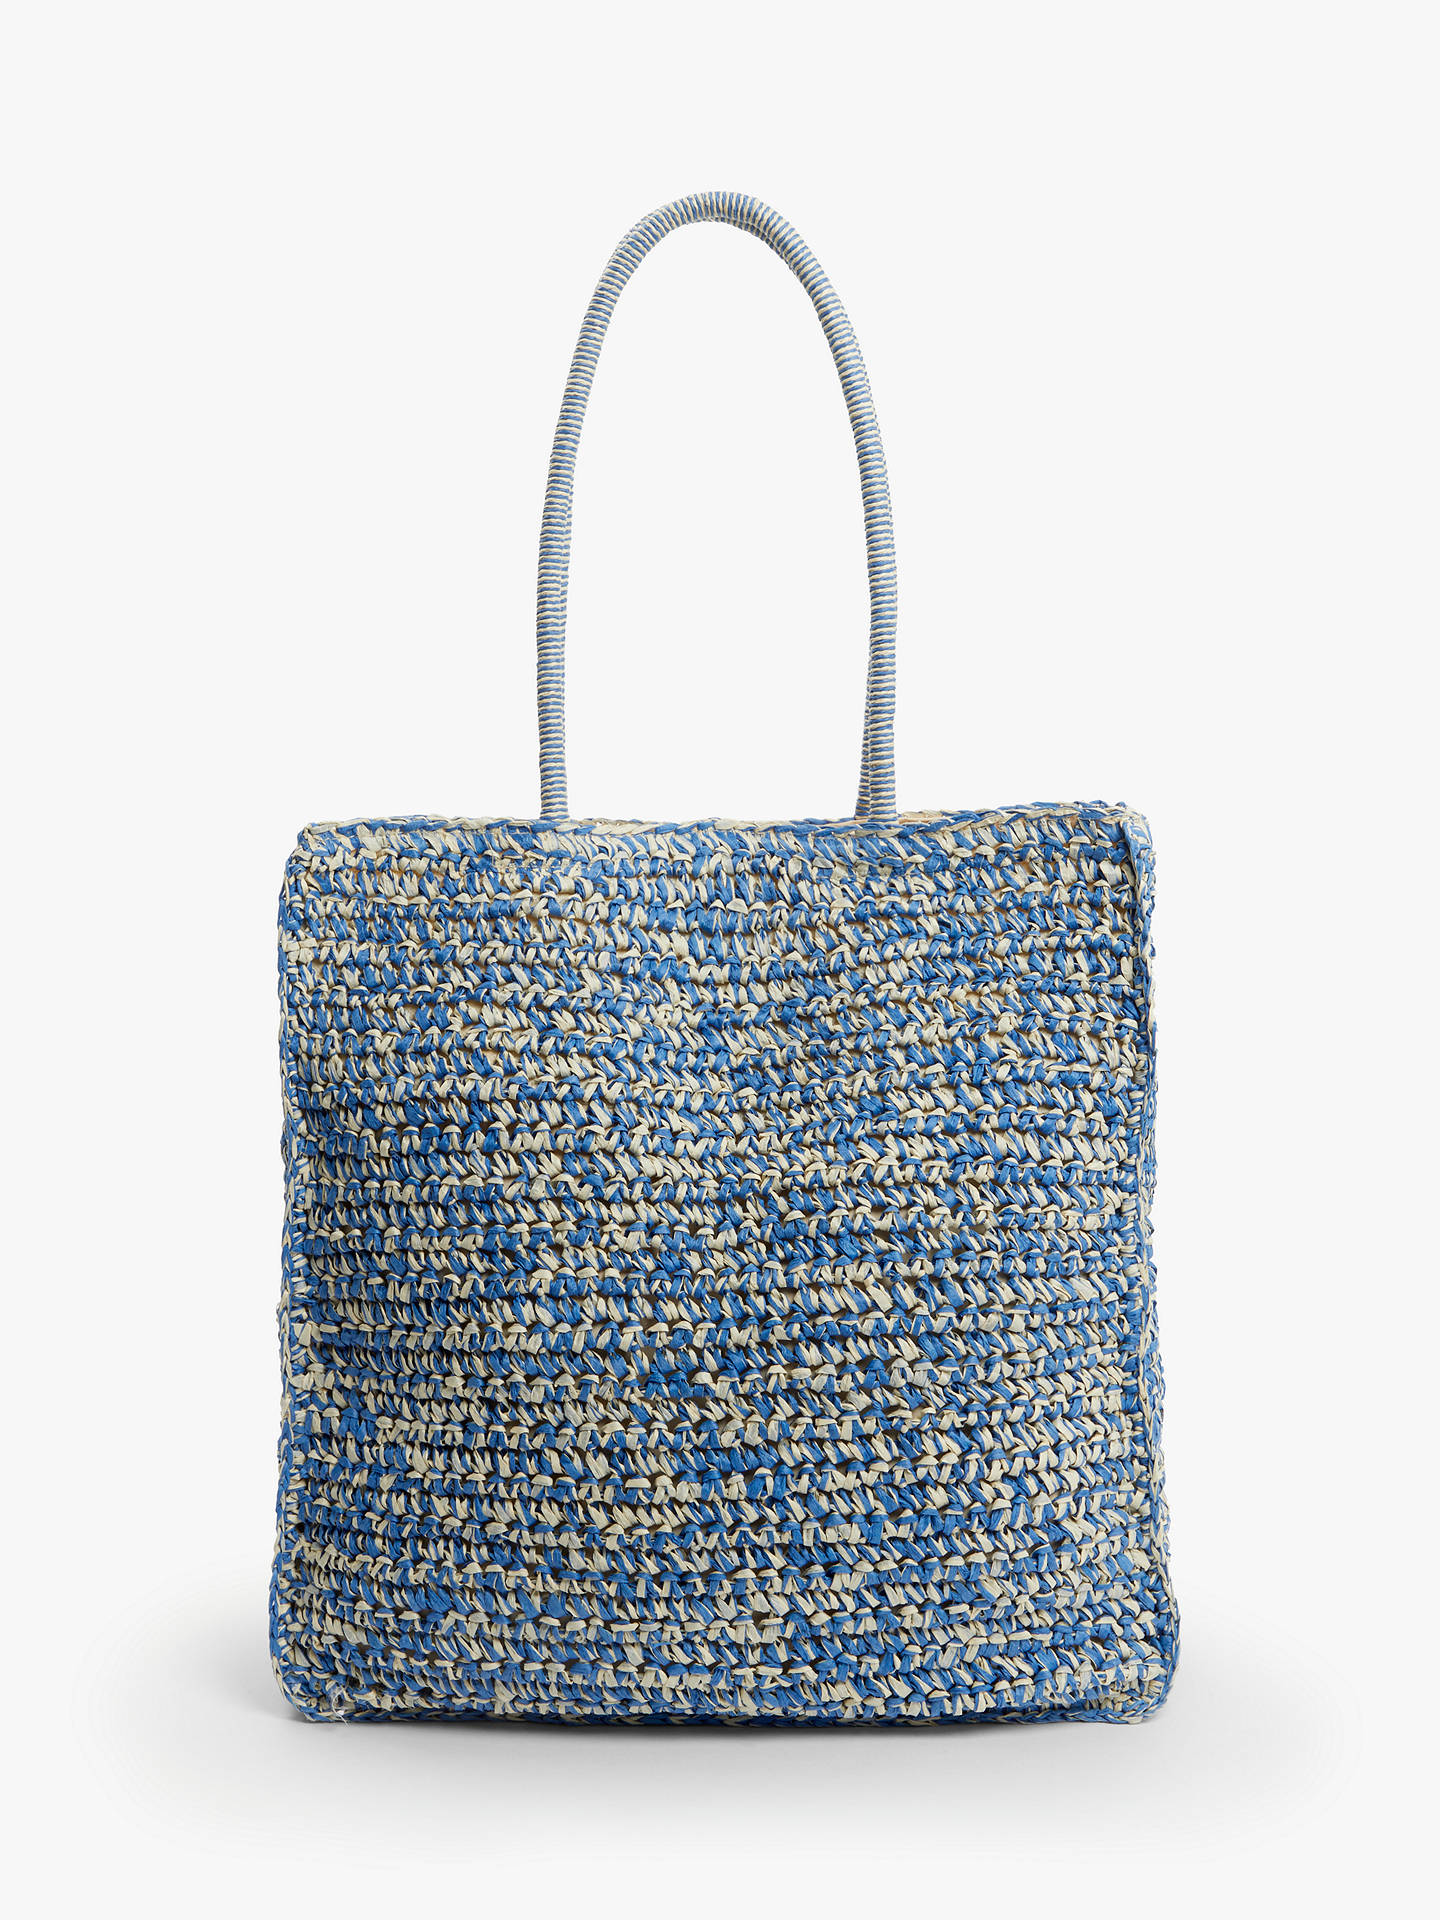 Buy John Lewis & Partners Carina Crochet Shopper Bag, Blue Neutral Online at johnlewis.com